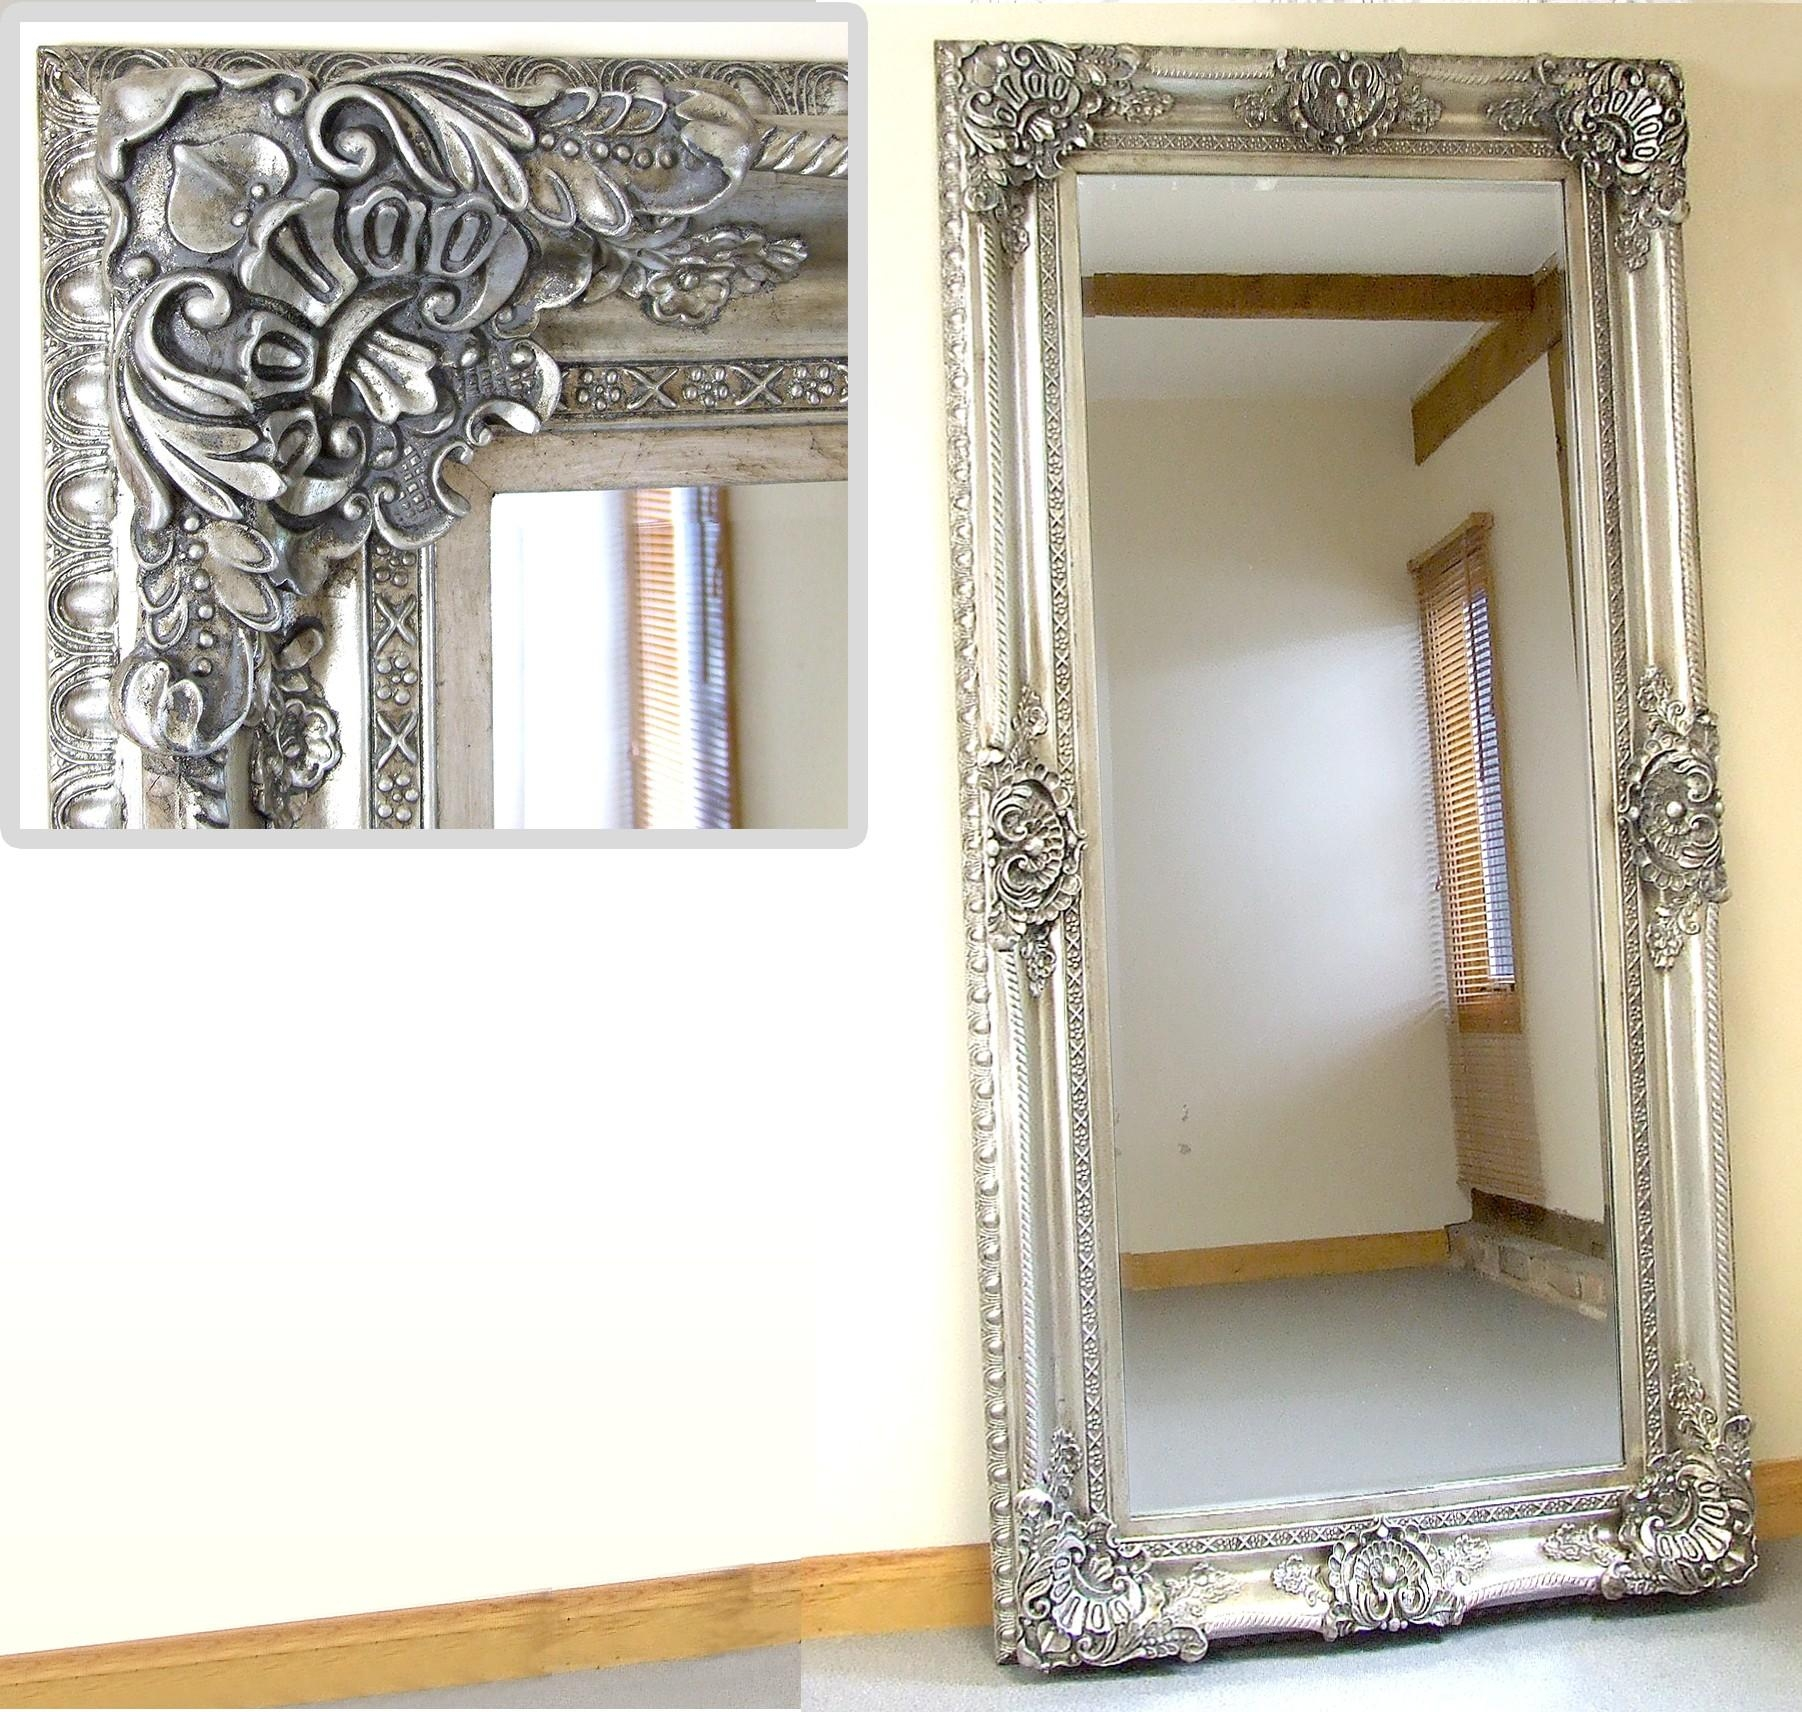 Full Length Silver Mirror 40 Unique Decoration And Ornate Full With Regard To Silver Ornate Wall Mirror (View 7 of 20)